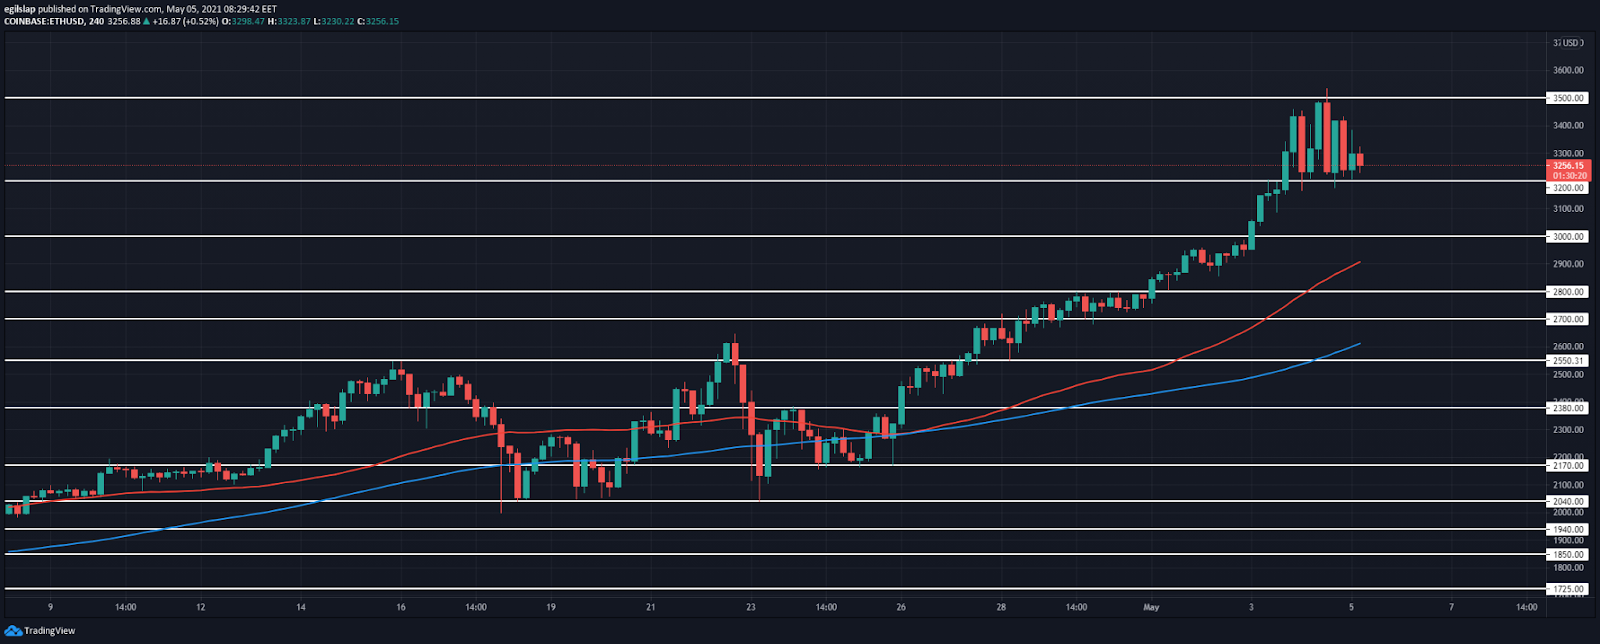 Ethereum price prediction: Ethereum reached $3,500, starts to consolidate in preparation for a retracement?